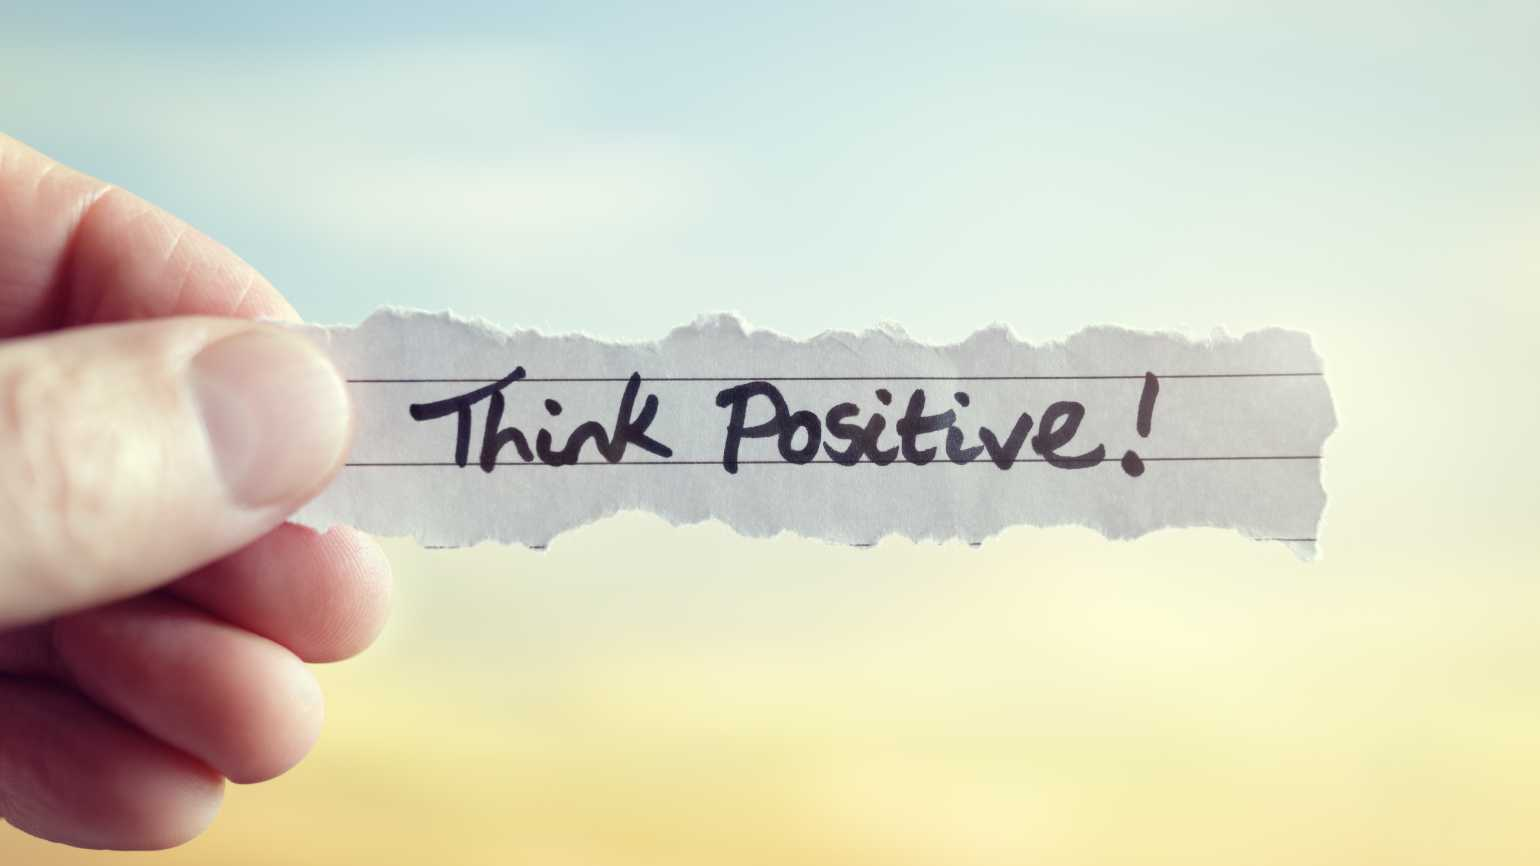 How the Power of Positive Thinking Lives On